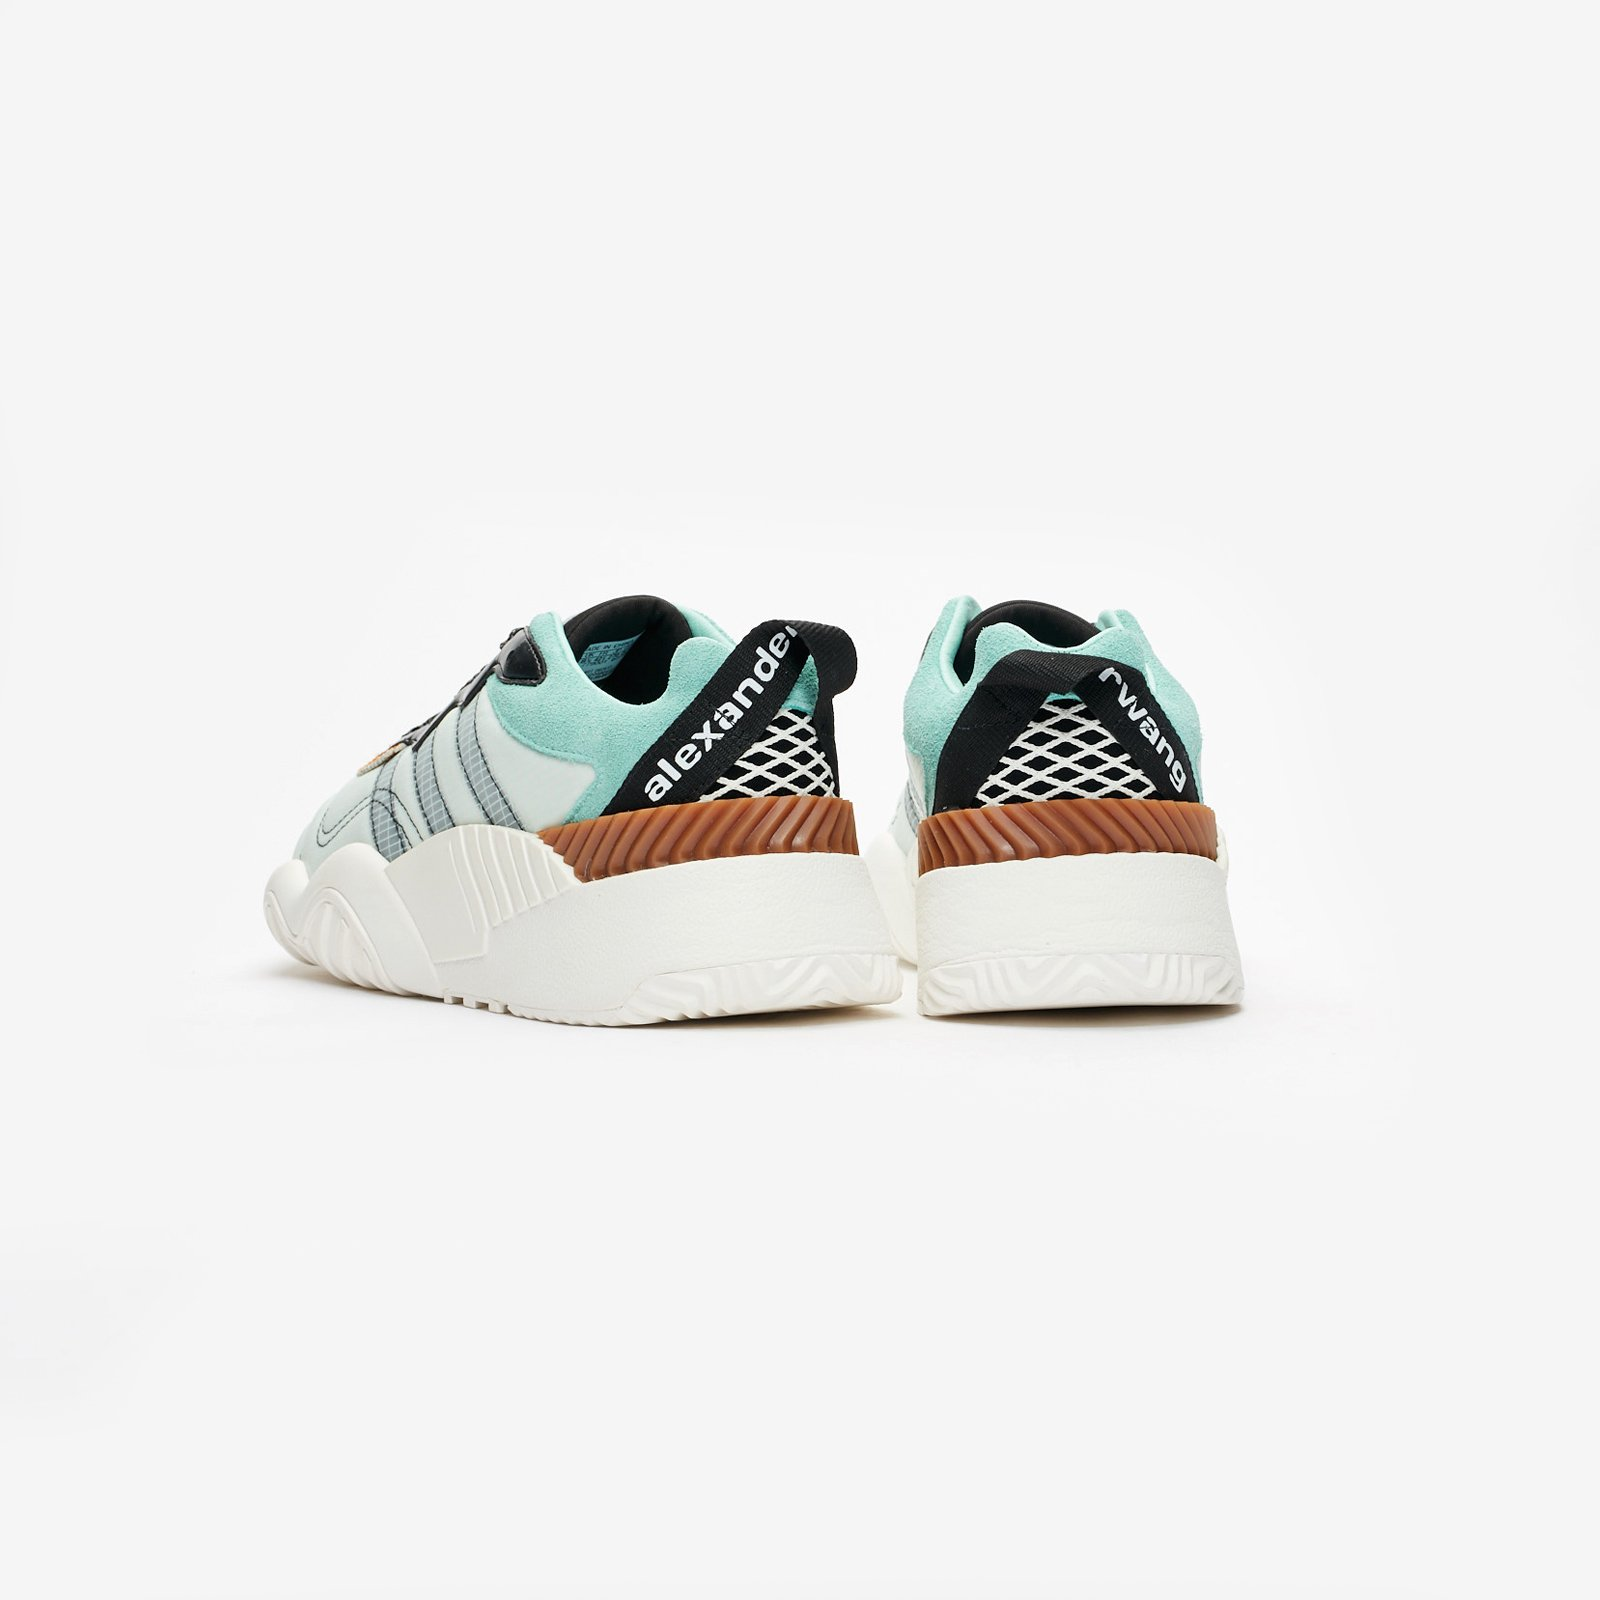 Trainer I Adidas Sneakersnstuff Turnout Aw Db2613 Sneakers 8wknP0XO